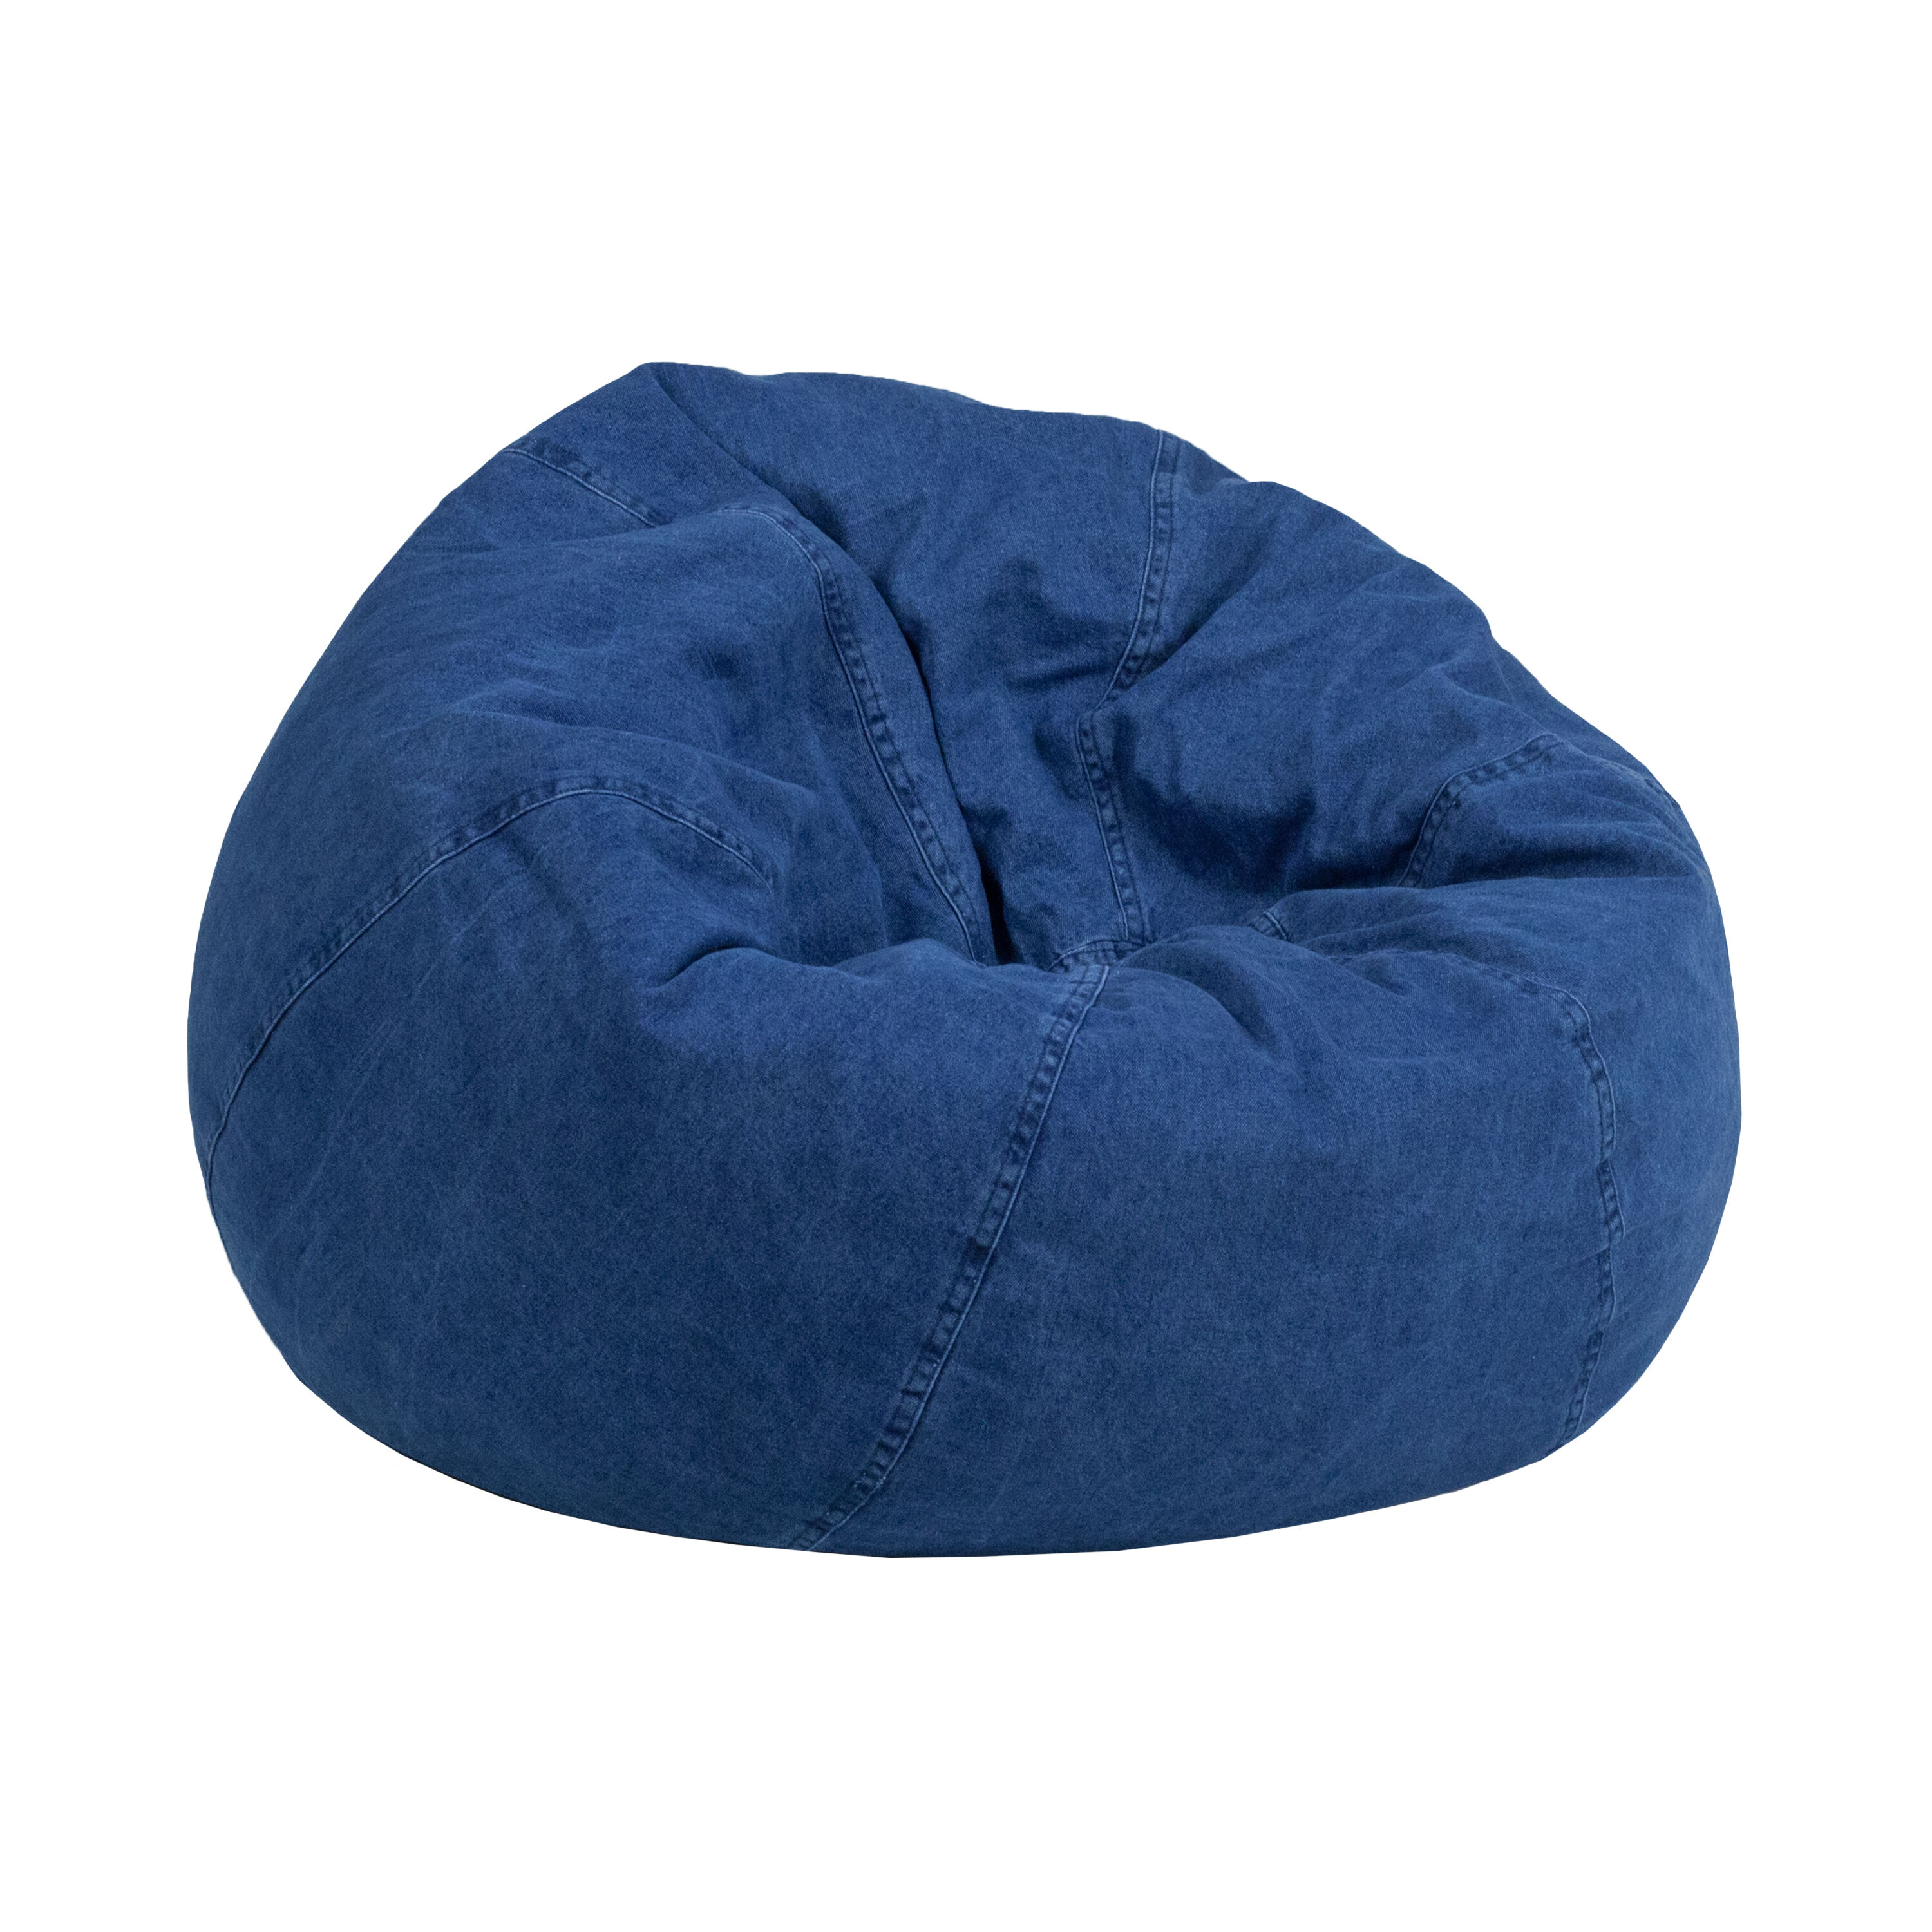 Our Small Denim Kids Bean Bag Chair Is On Sale Now.